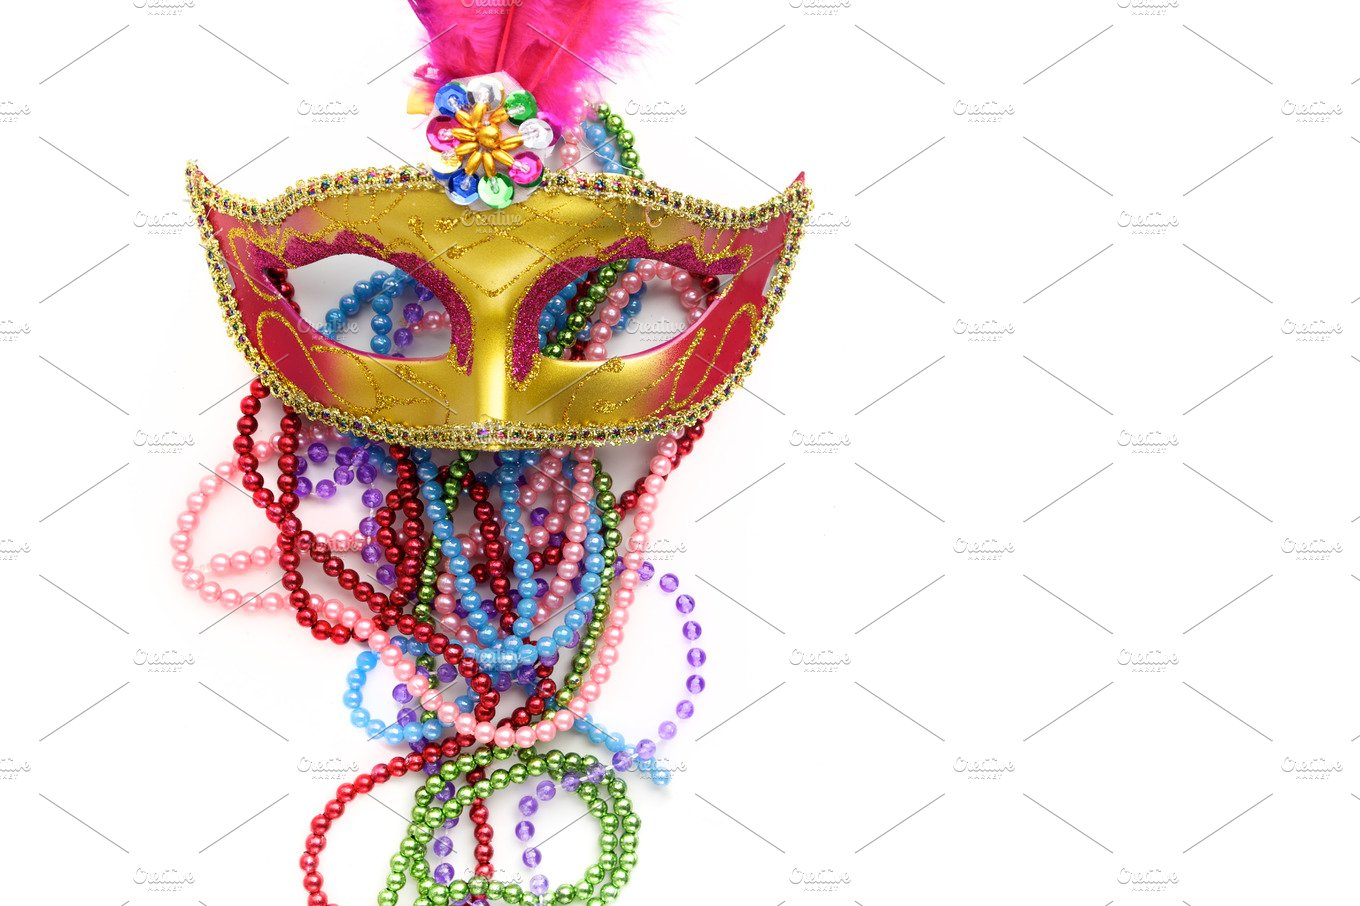 creative bead new water with orleans problem paradegoers image get no standing life bridge entertainment carnival gras beads article mardi